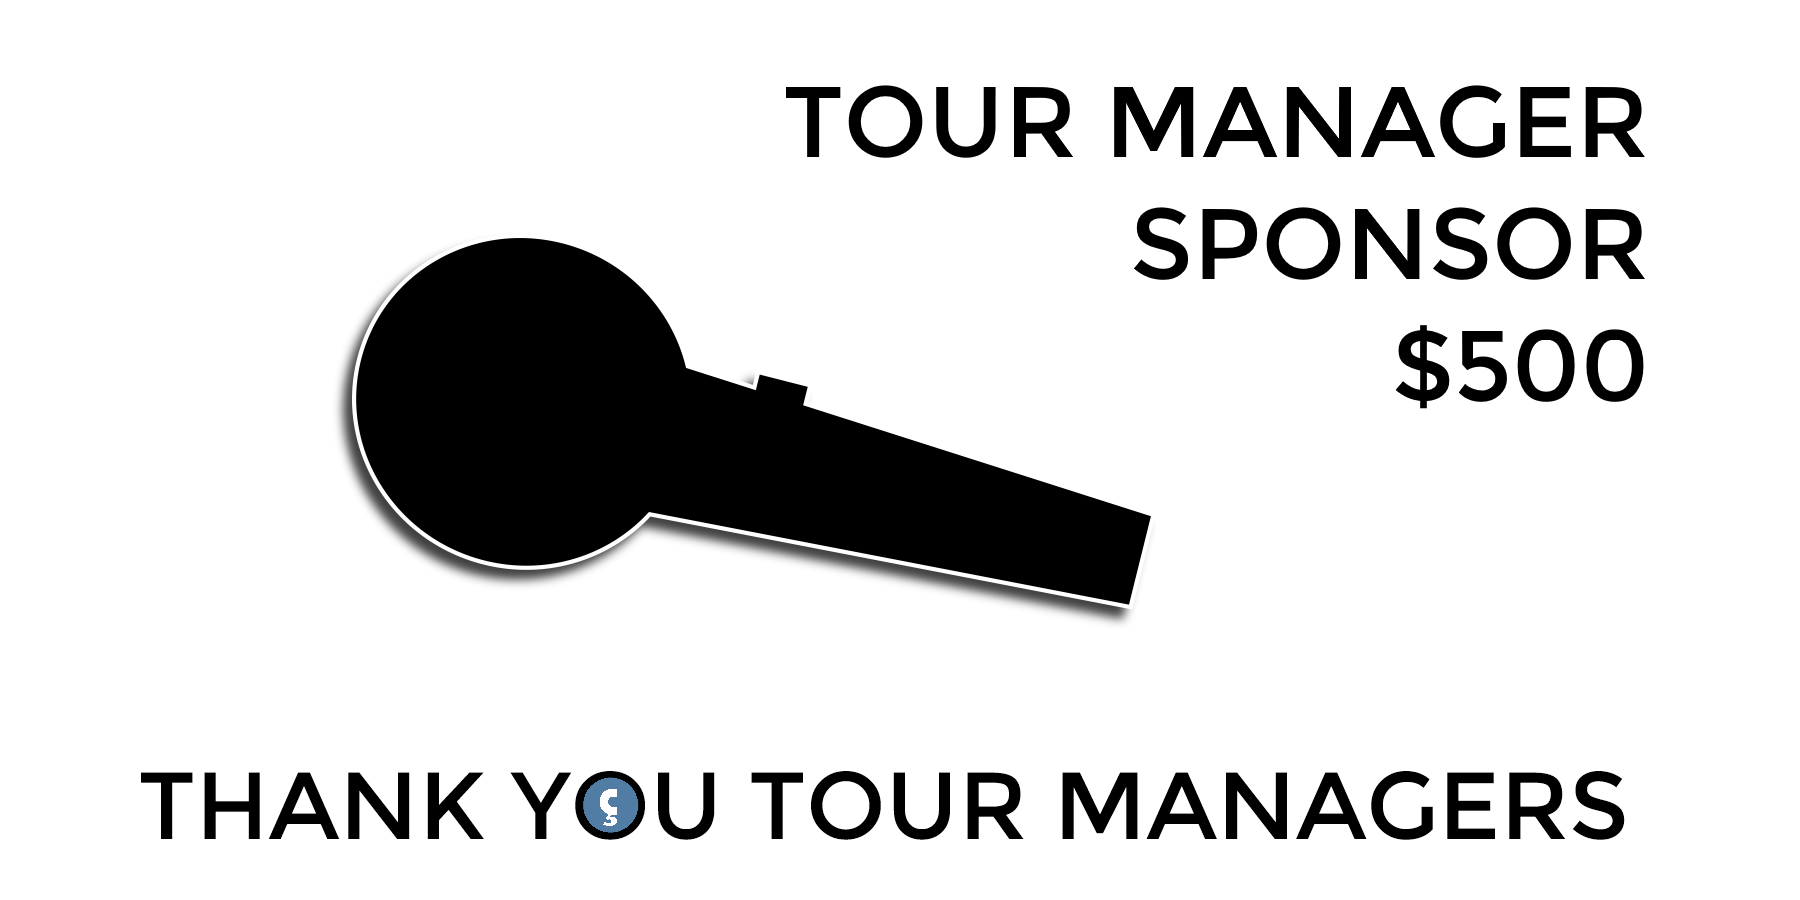 Thank You Tour Manager Sponsors!